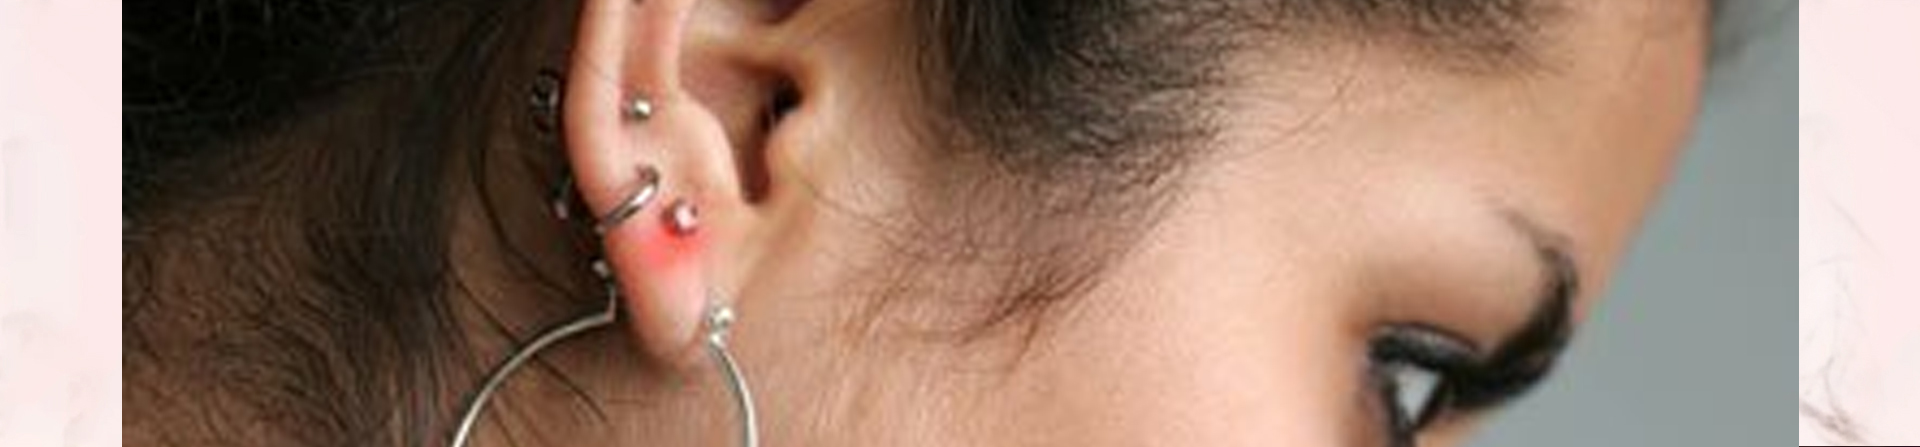 best ear piercing clinic in bhubaneswar